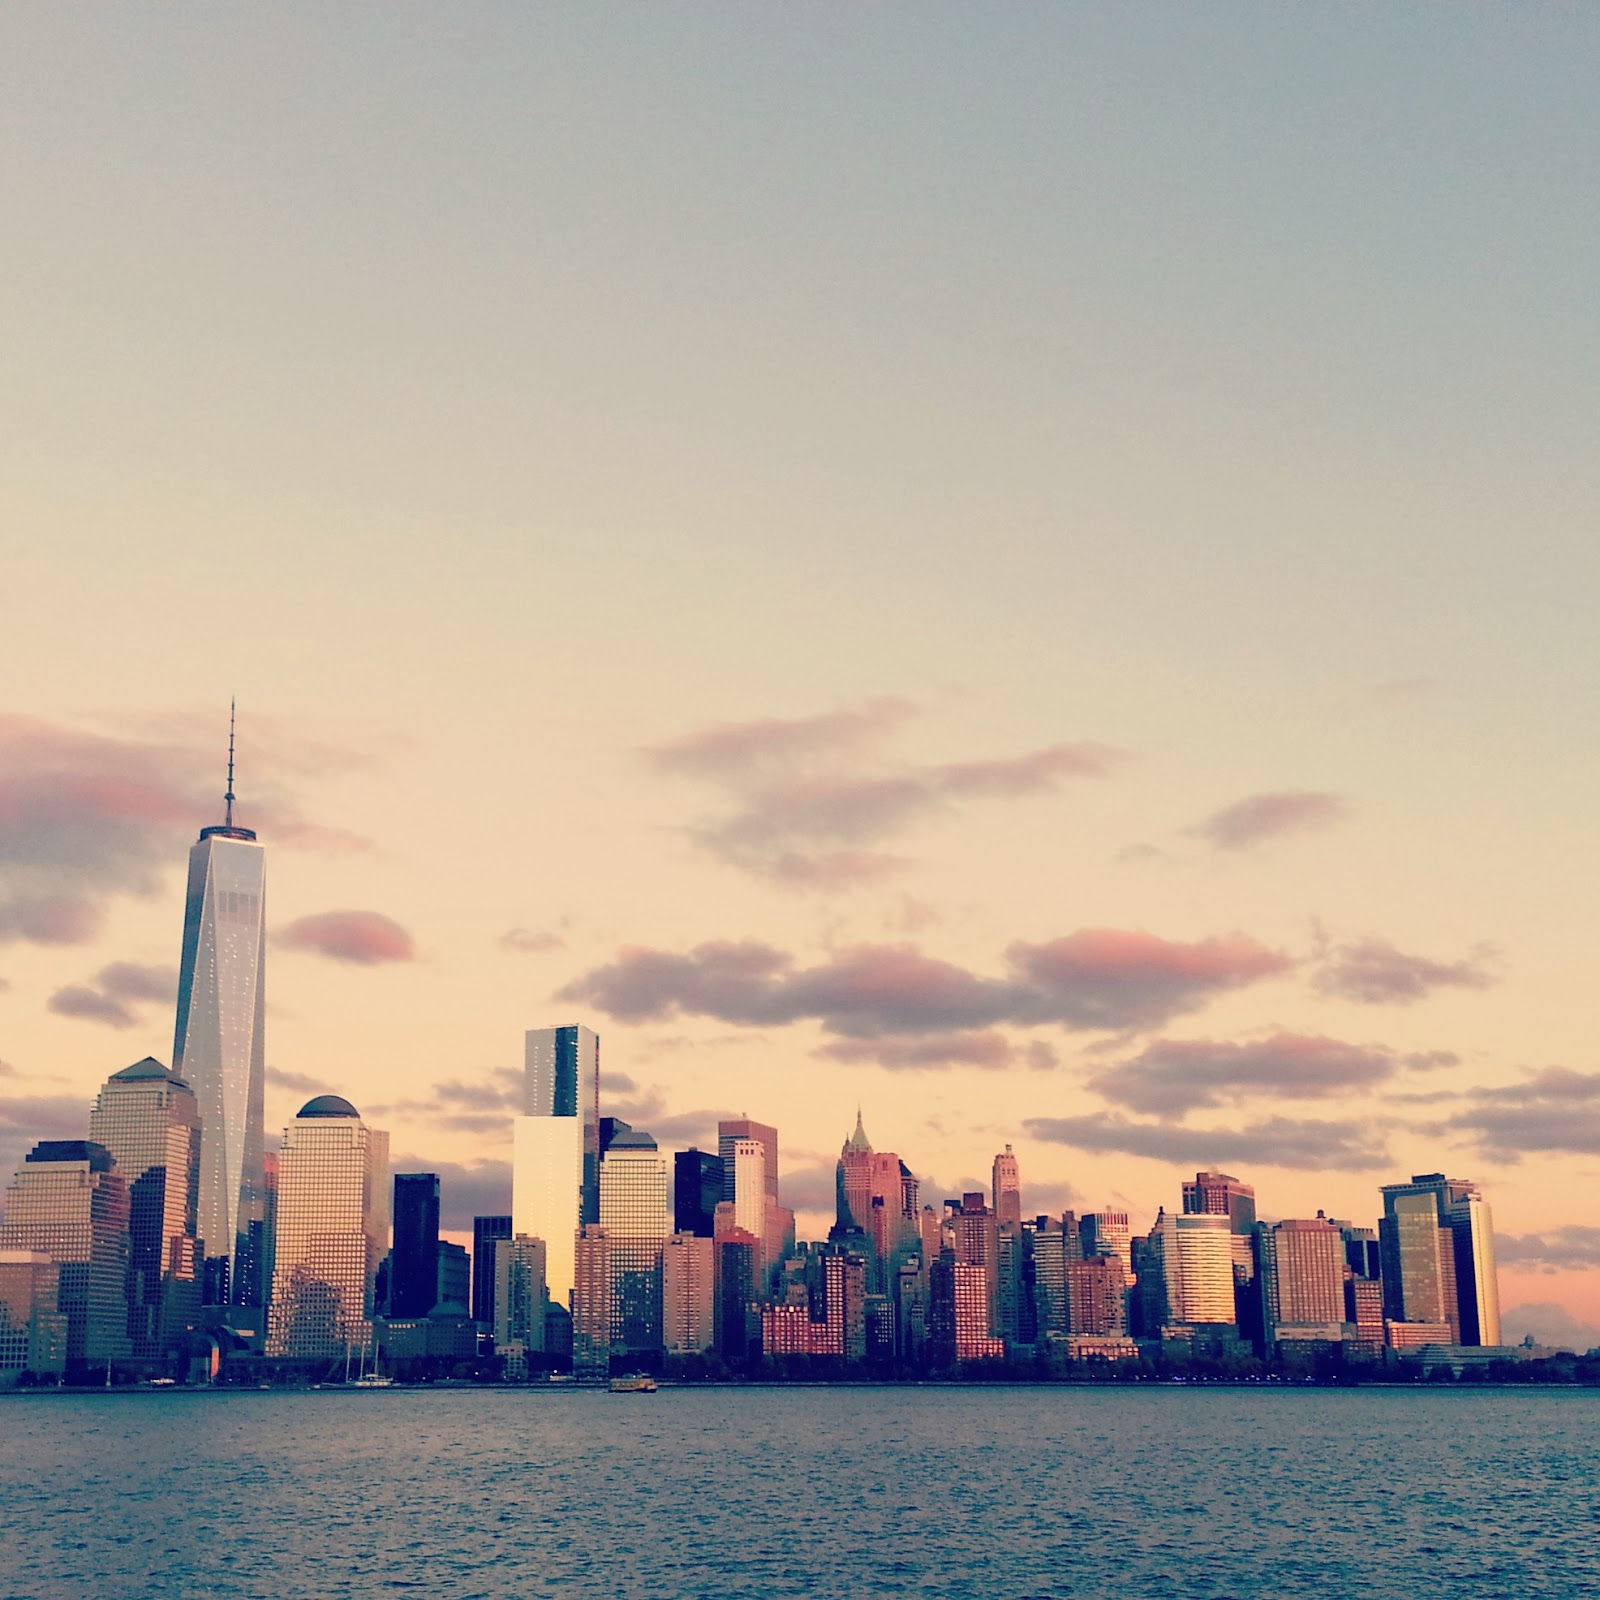 NYC/Manhattan from across the Hudson River  |  The rosy glow of an autumn dusk  |  http://afeatherynest.blogspot.com